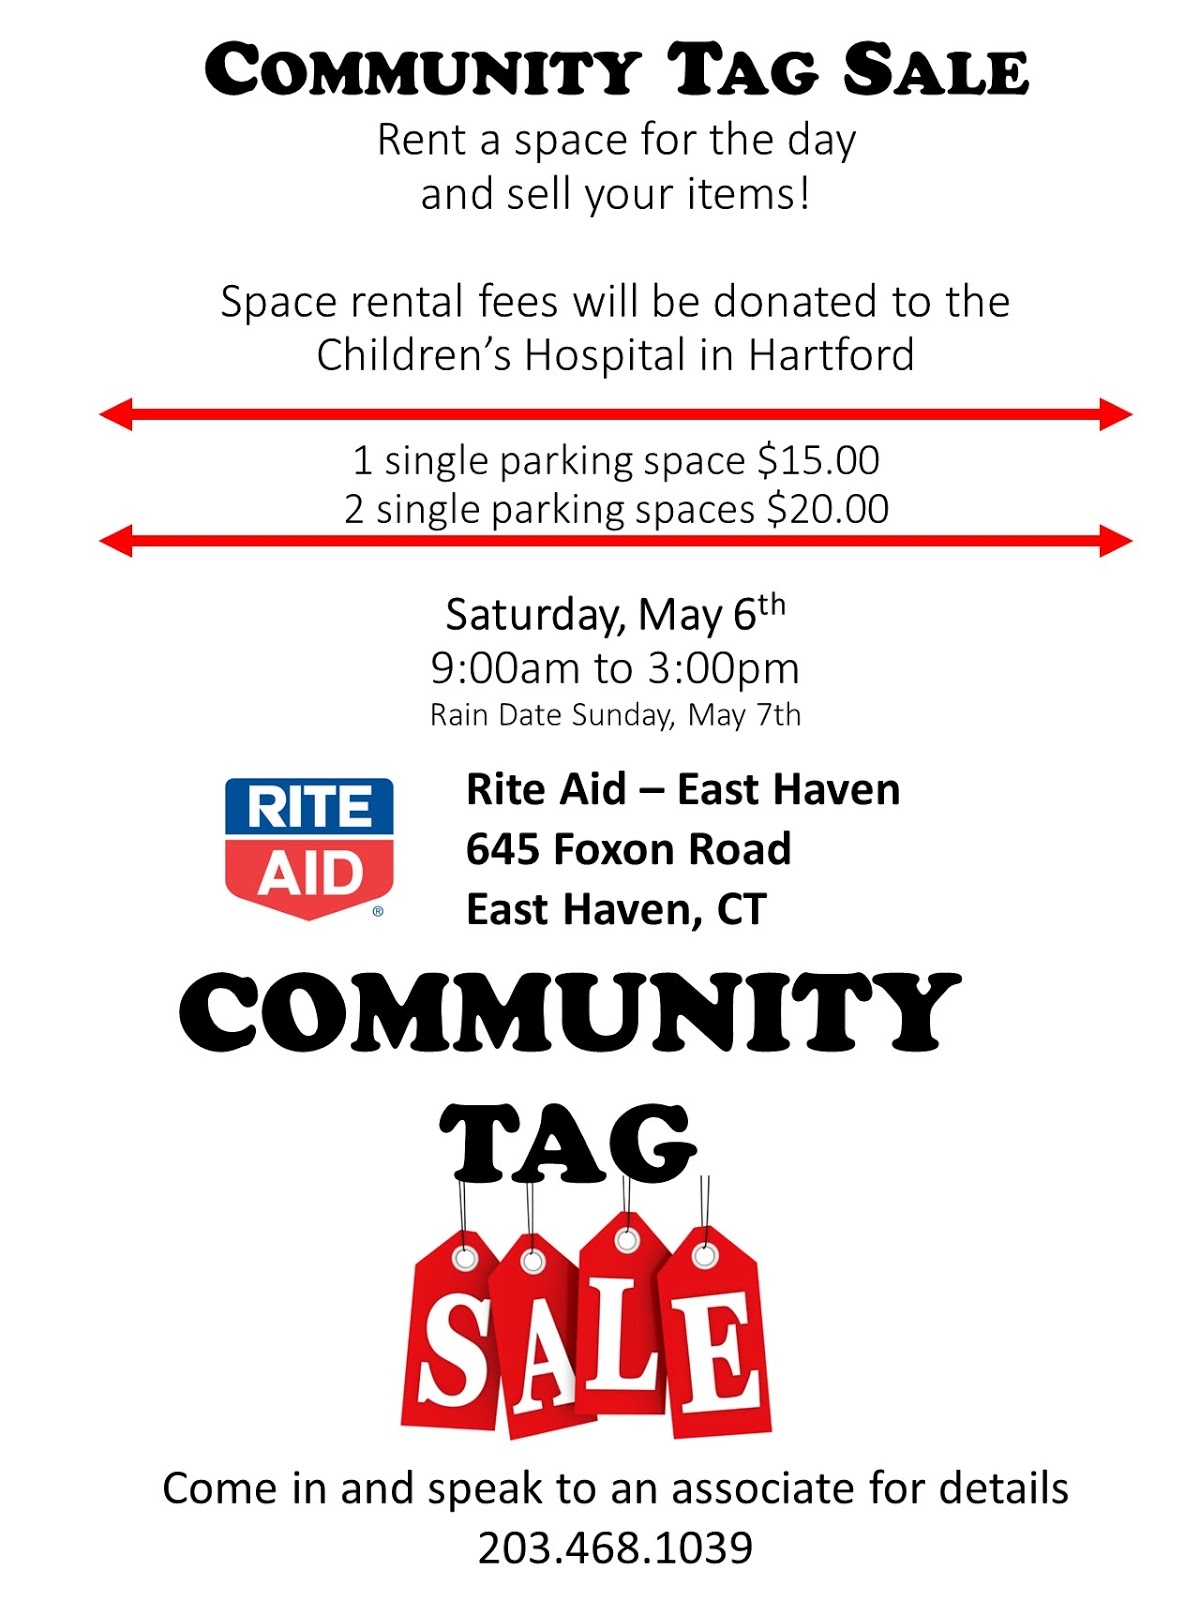 Home Place: Rite Aid in East Haven CT - A Community Tag Sale